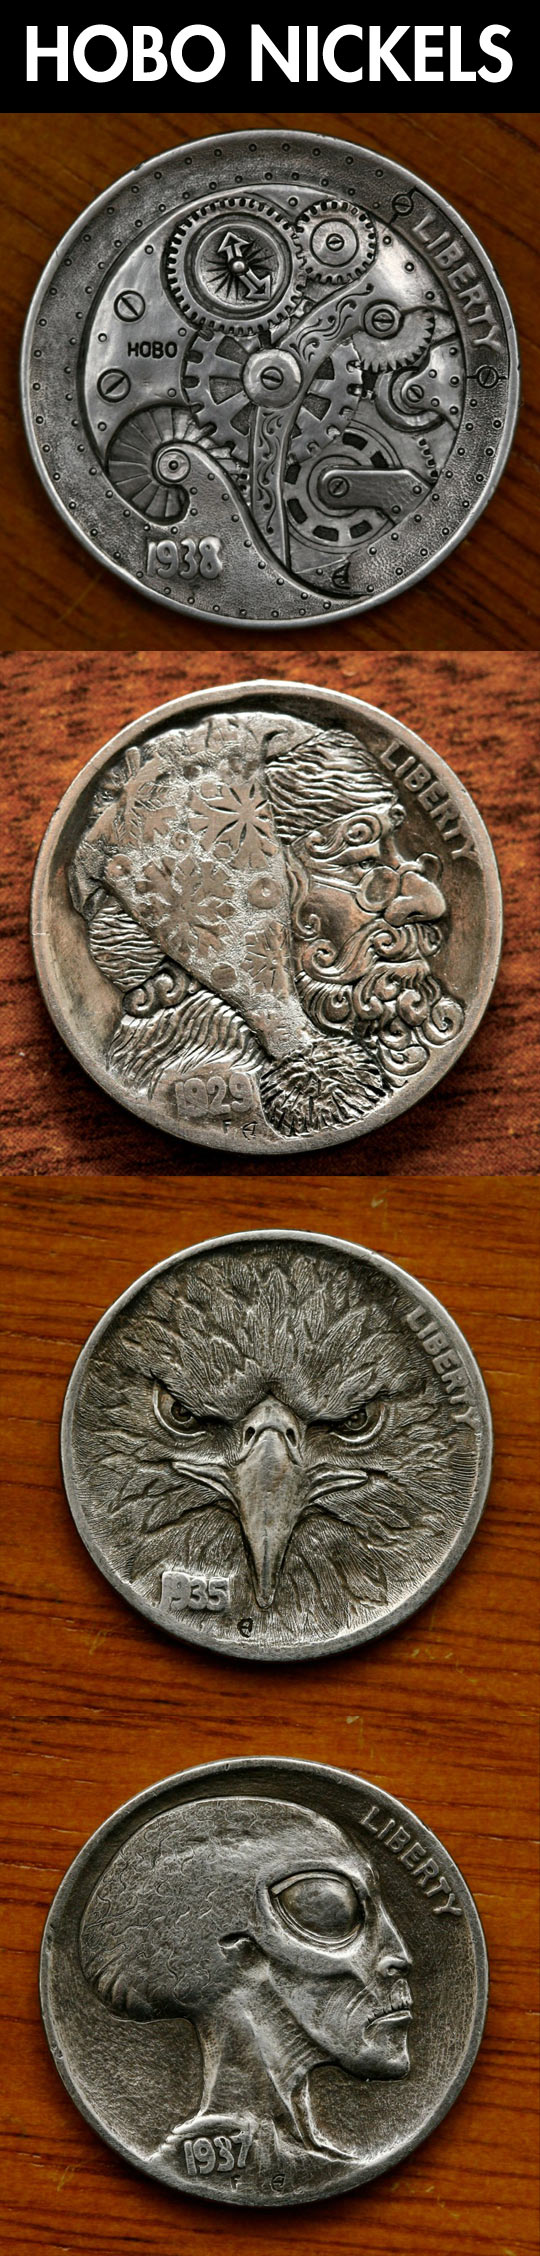 Sculptural art form involving the creative modification of small-denomination coins...